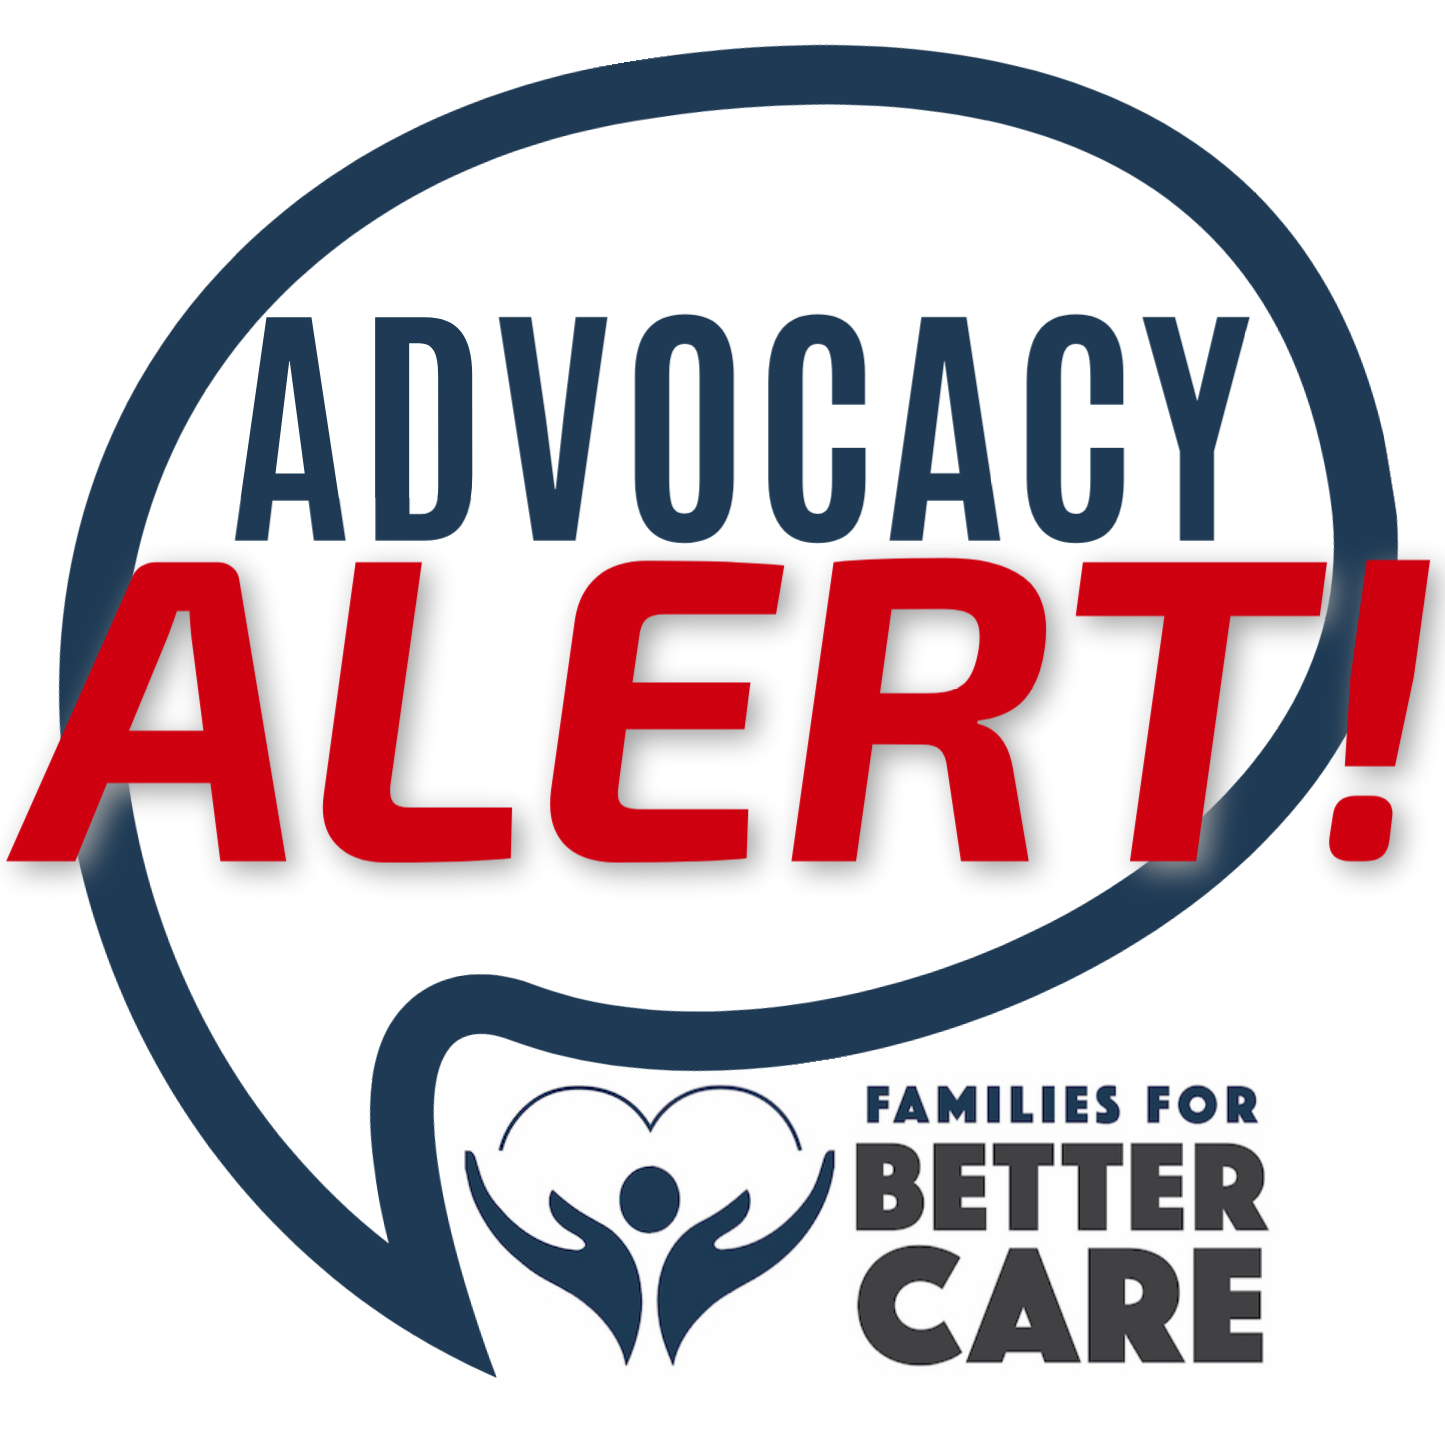 ADVOCACY ALERT: Florida Ombudsman Abruptly Resigns; Lawmaker Seeks to Deregulate Florida's Assisted Living Facilities